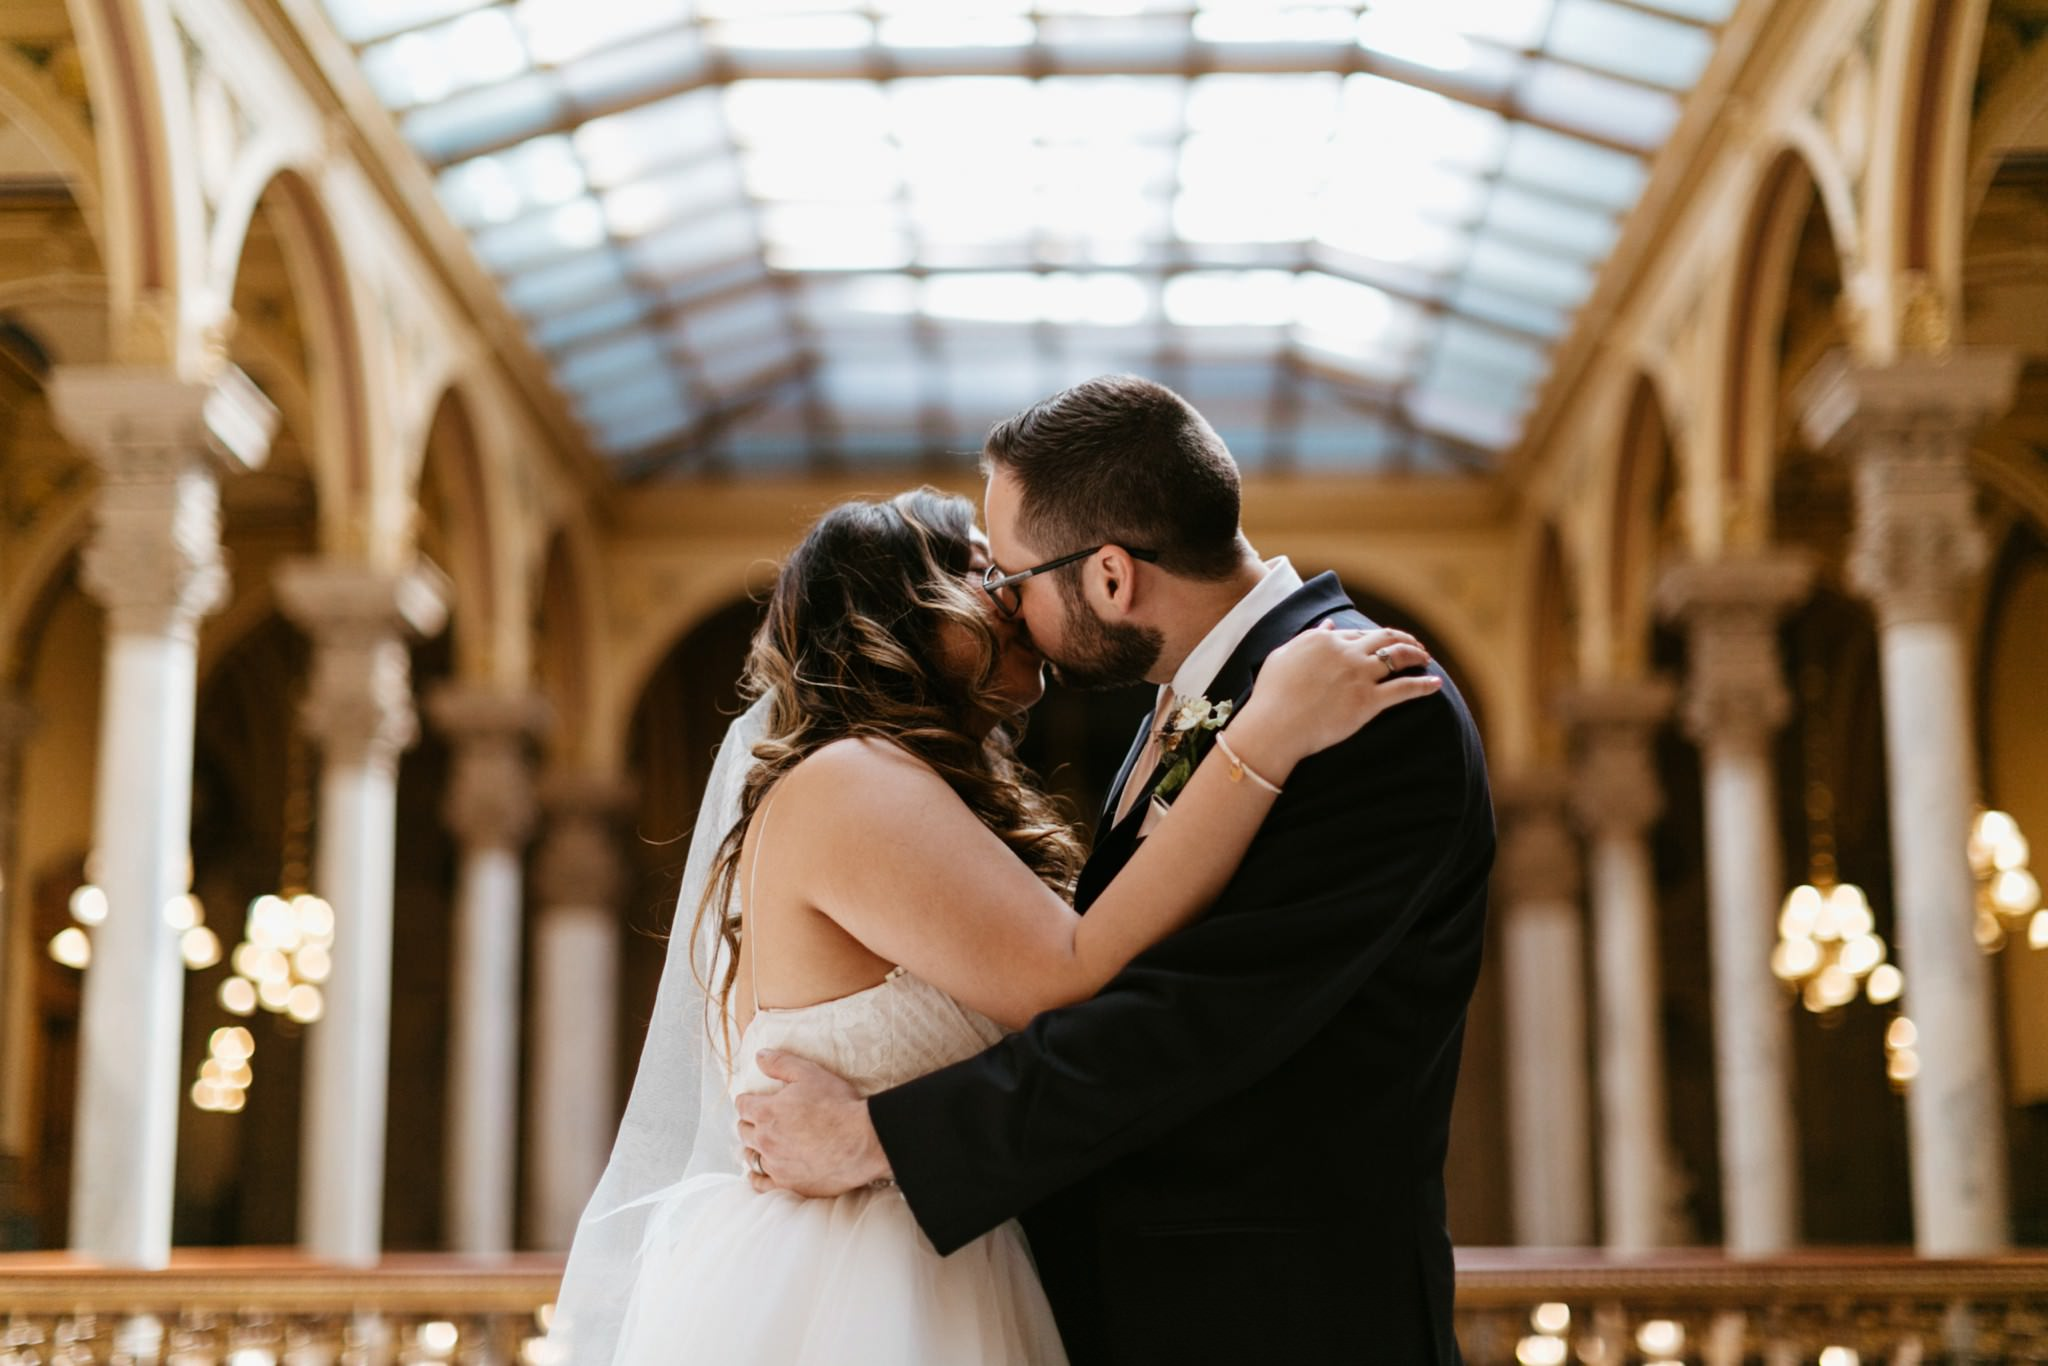 bride-and-groom-kiss-for-wedding-portrait-at-indiana-state-house